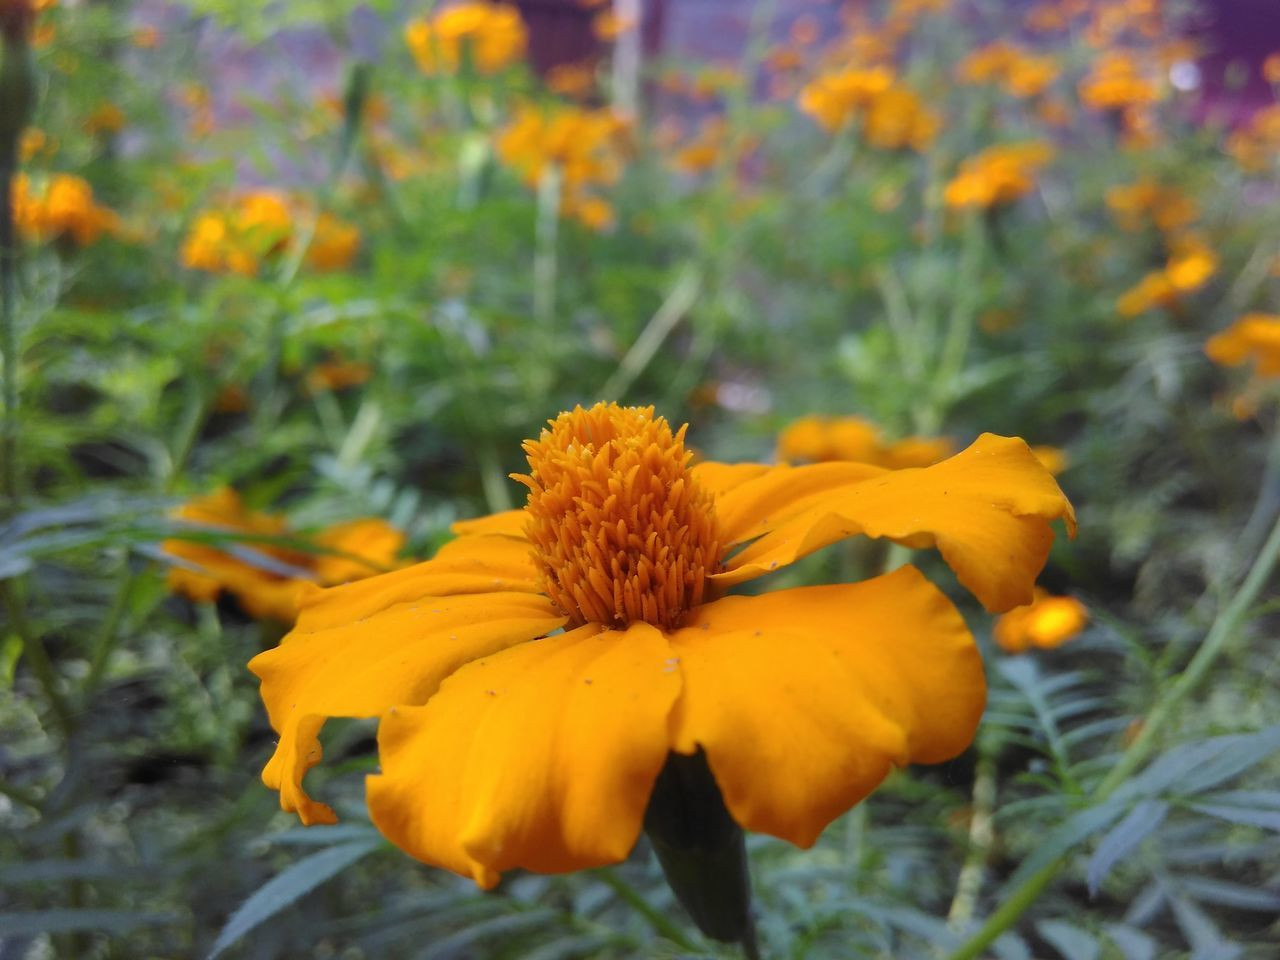 Flower Nature Plant Beauty In Nature Growth Fragility Petal Orange Color Focus On Foreground Close-up Outdoors Freshness Day Flower Head Blooming No People